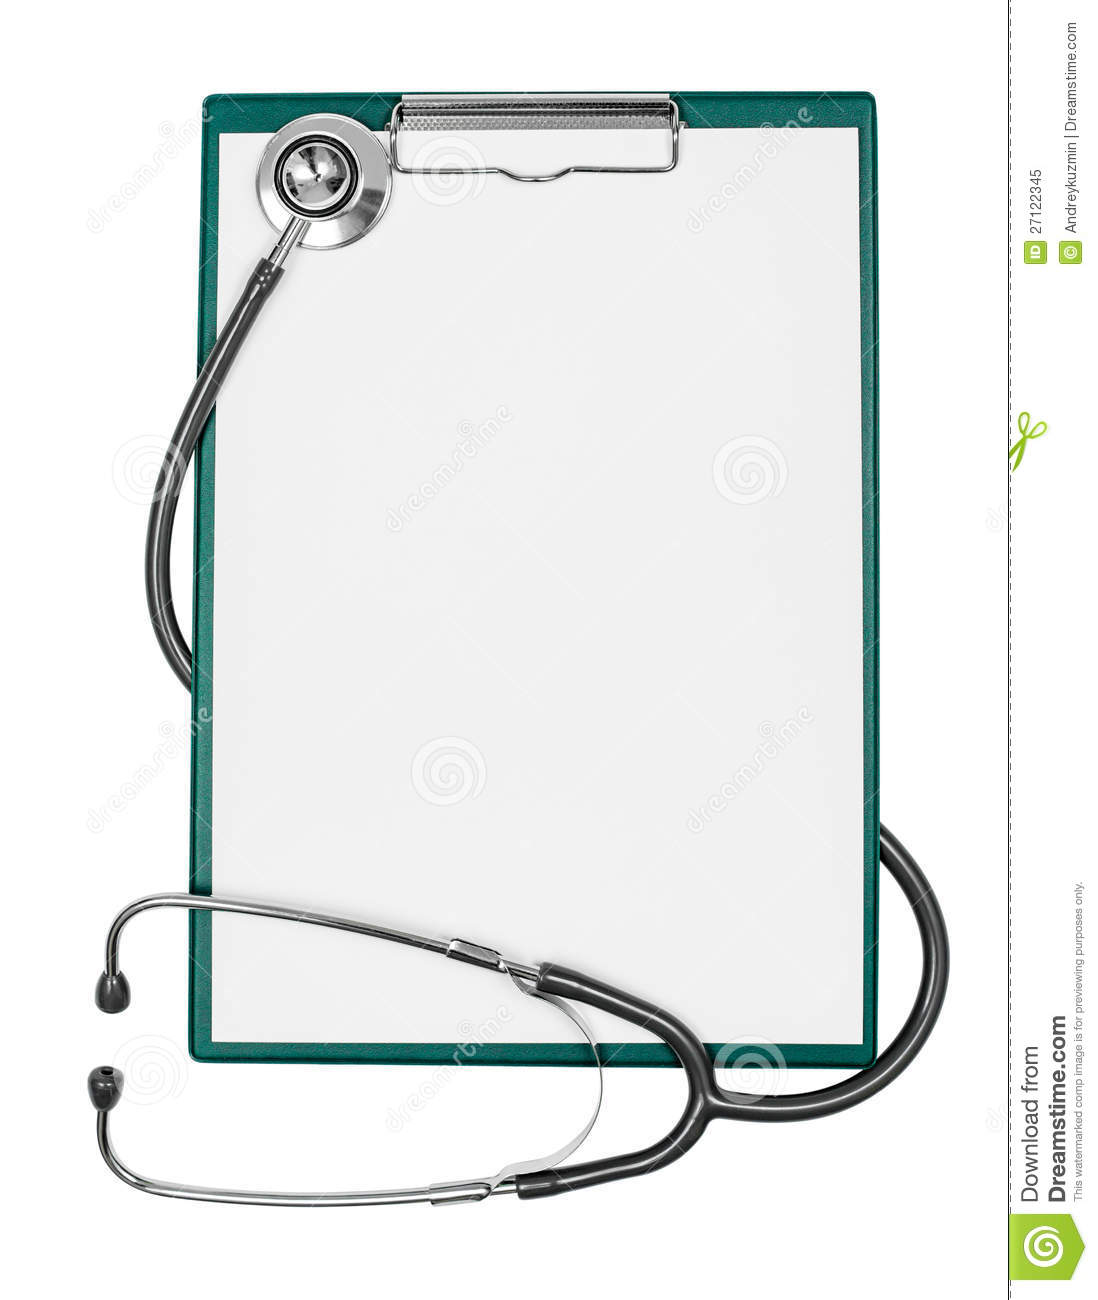 Collection of 14 free Stethoscope clipart border aztec.